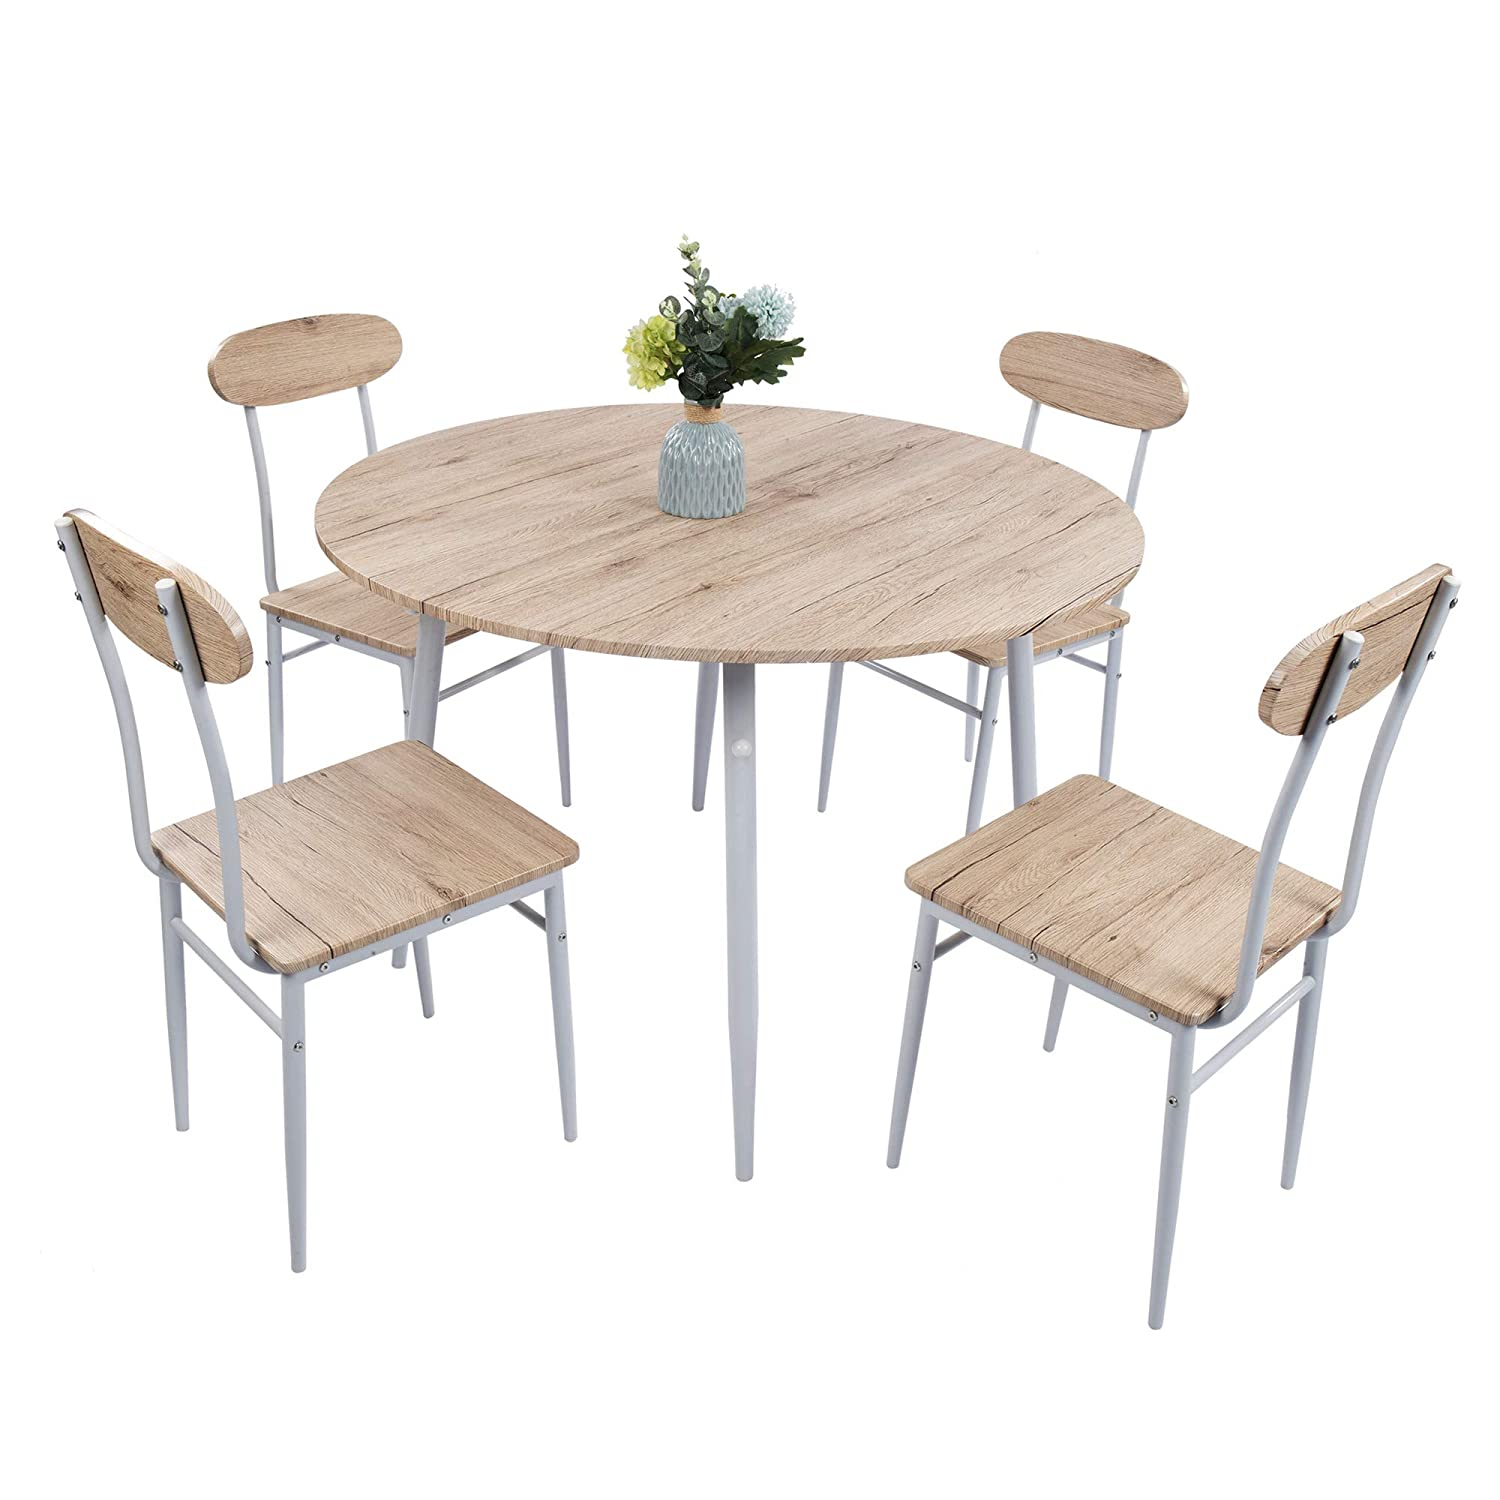 Lucky Tree 5 Piece Kitchen Table and Chairs for 4 Dinning Room Table Set Wood Round Table Chairs Dinette Table Set Modern Design